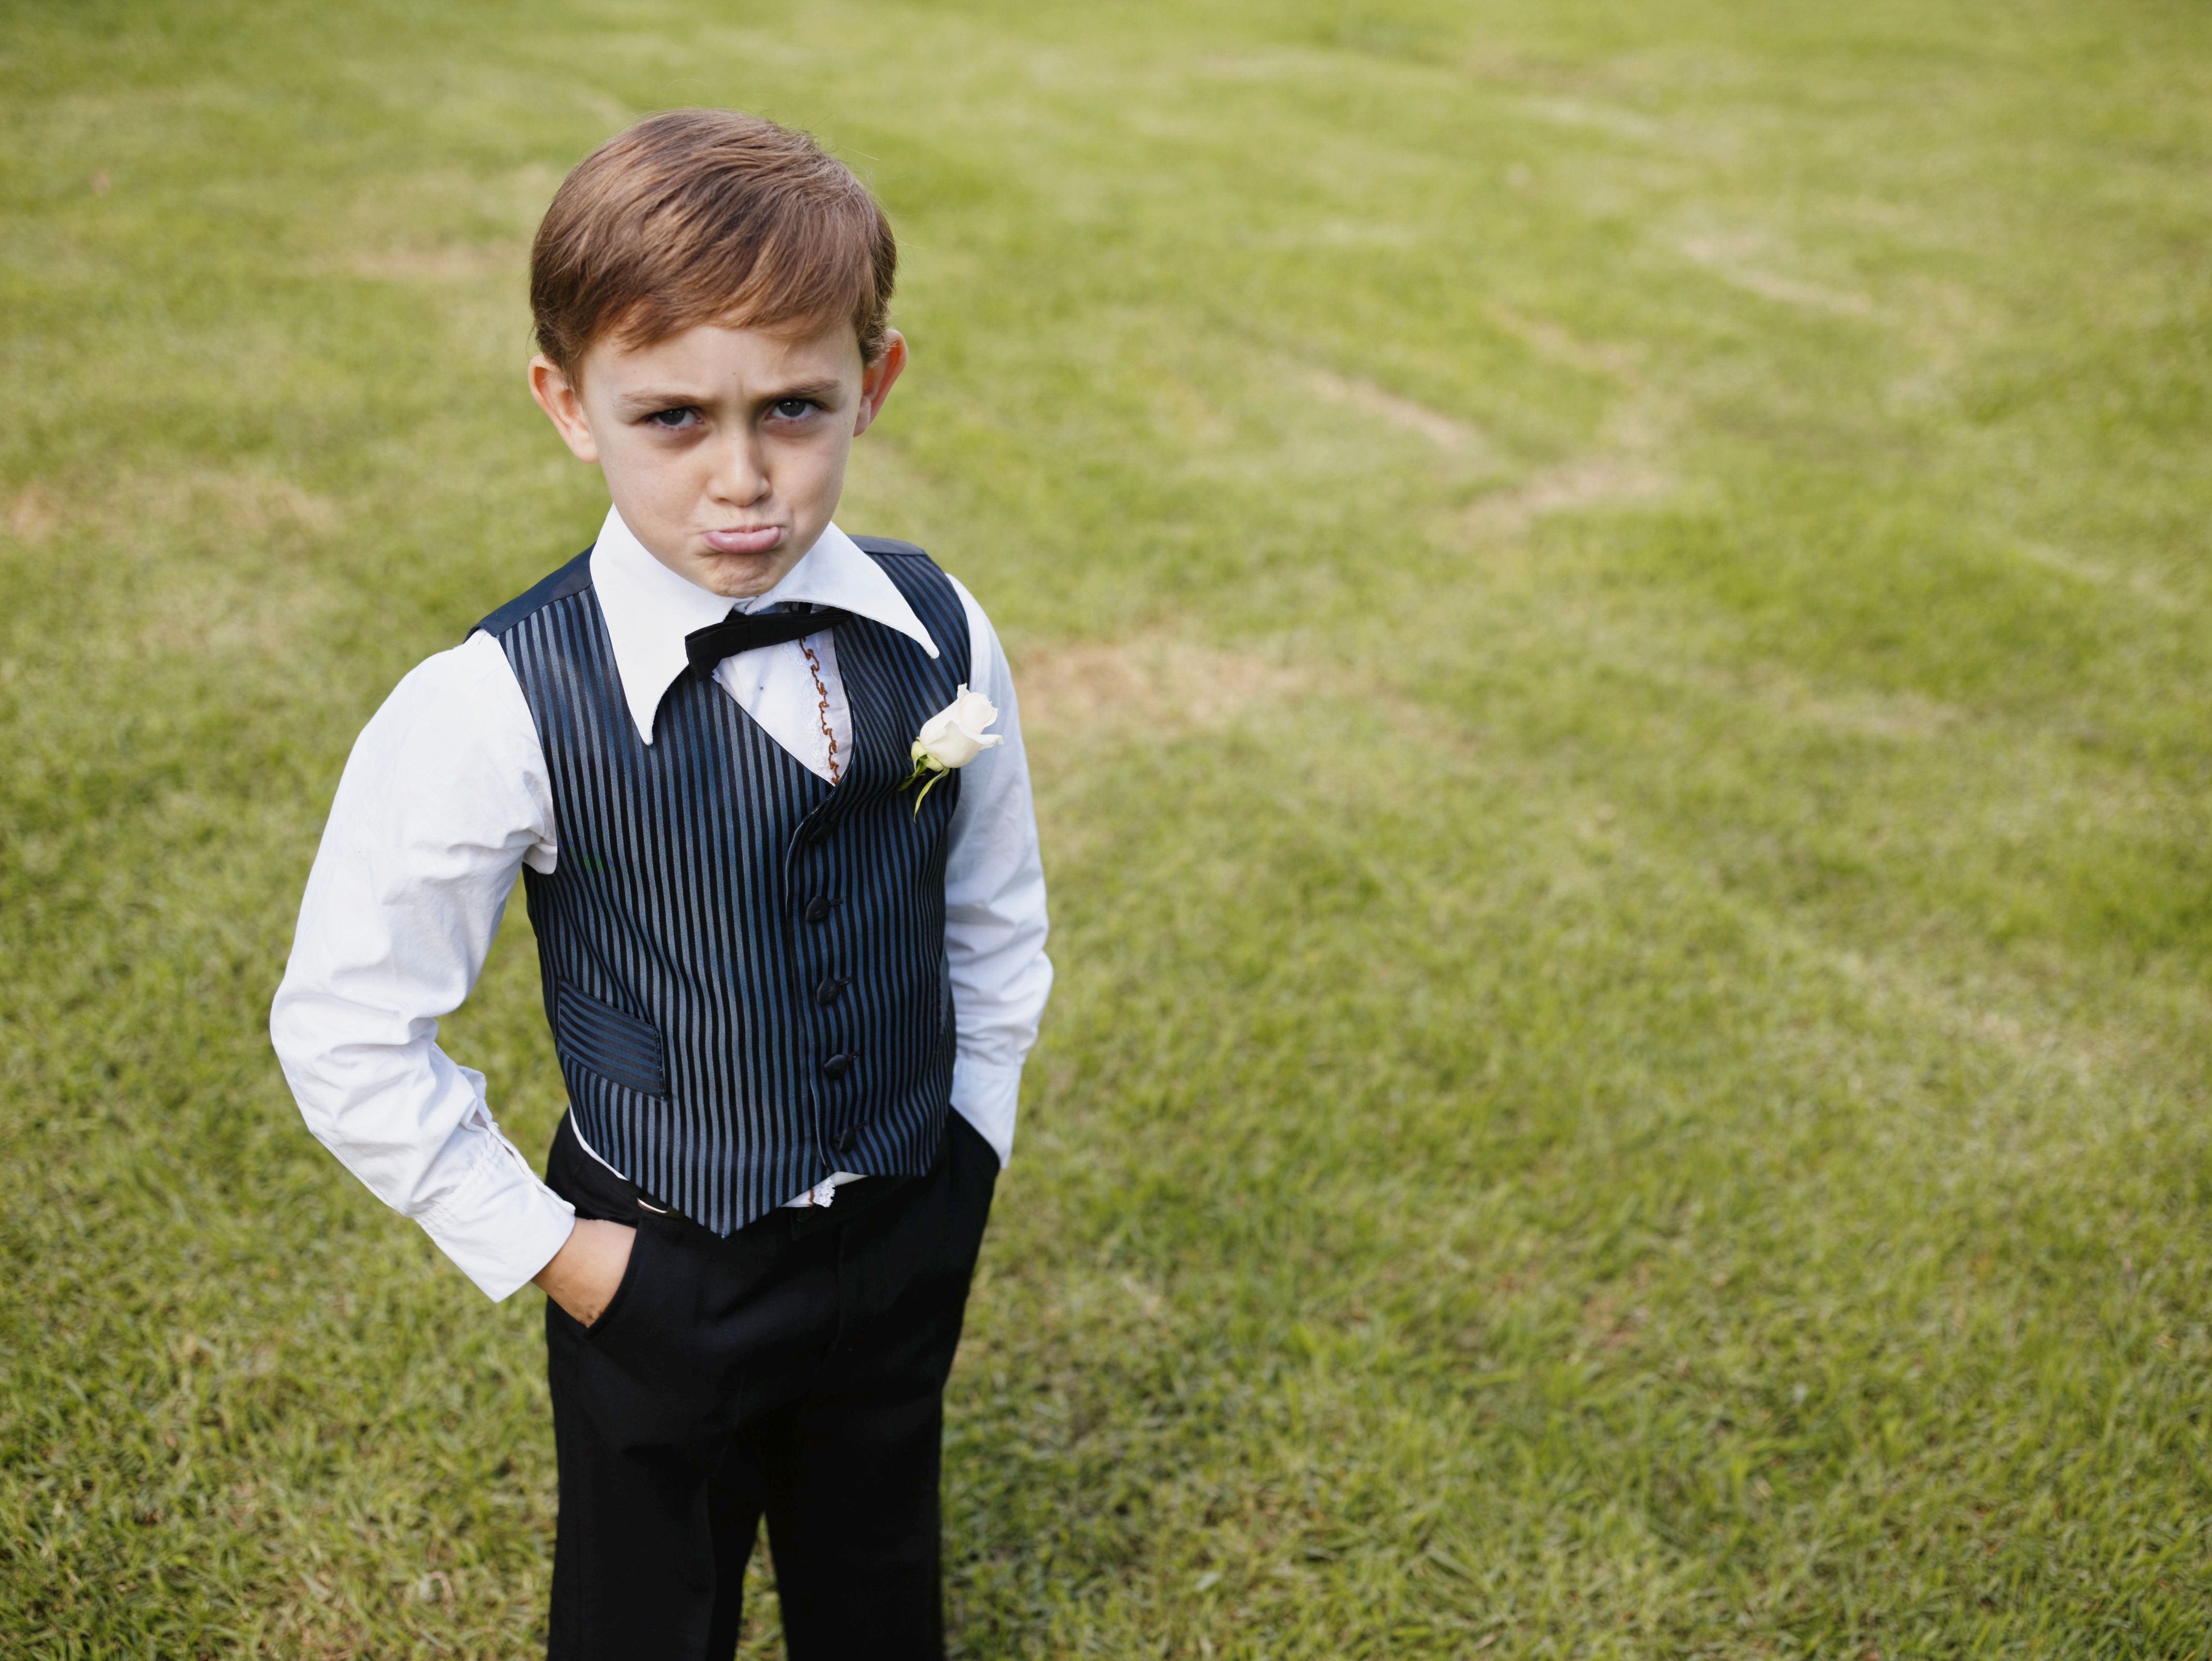 7 Things To Consider Before Taking Your Child To A